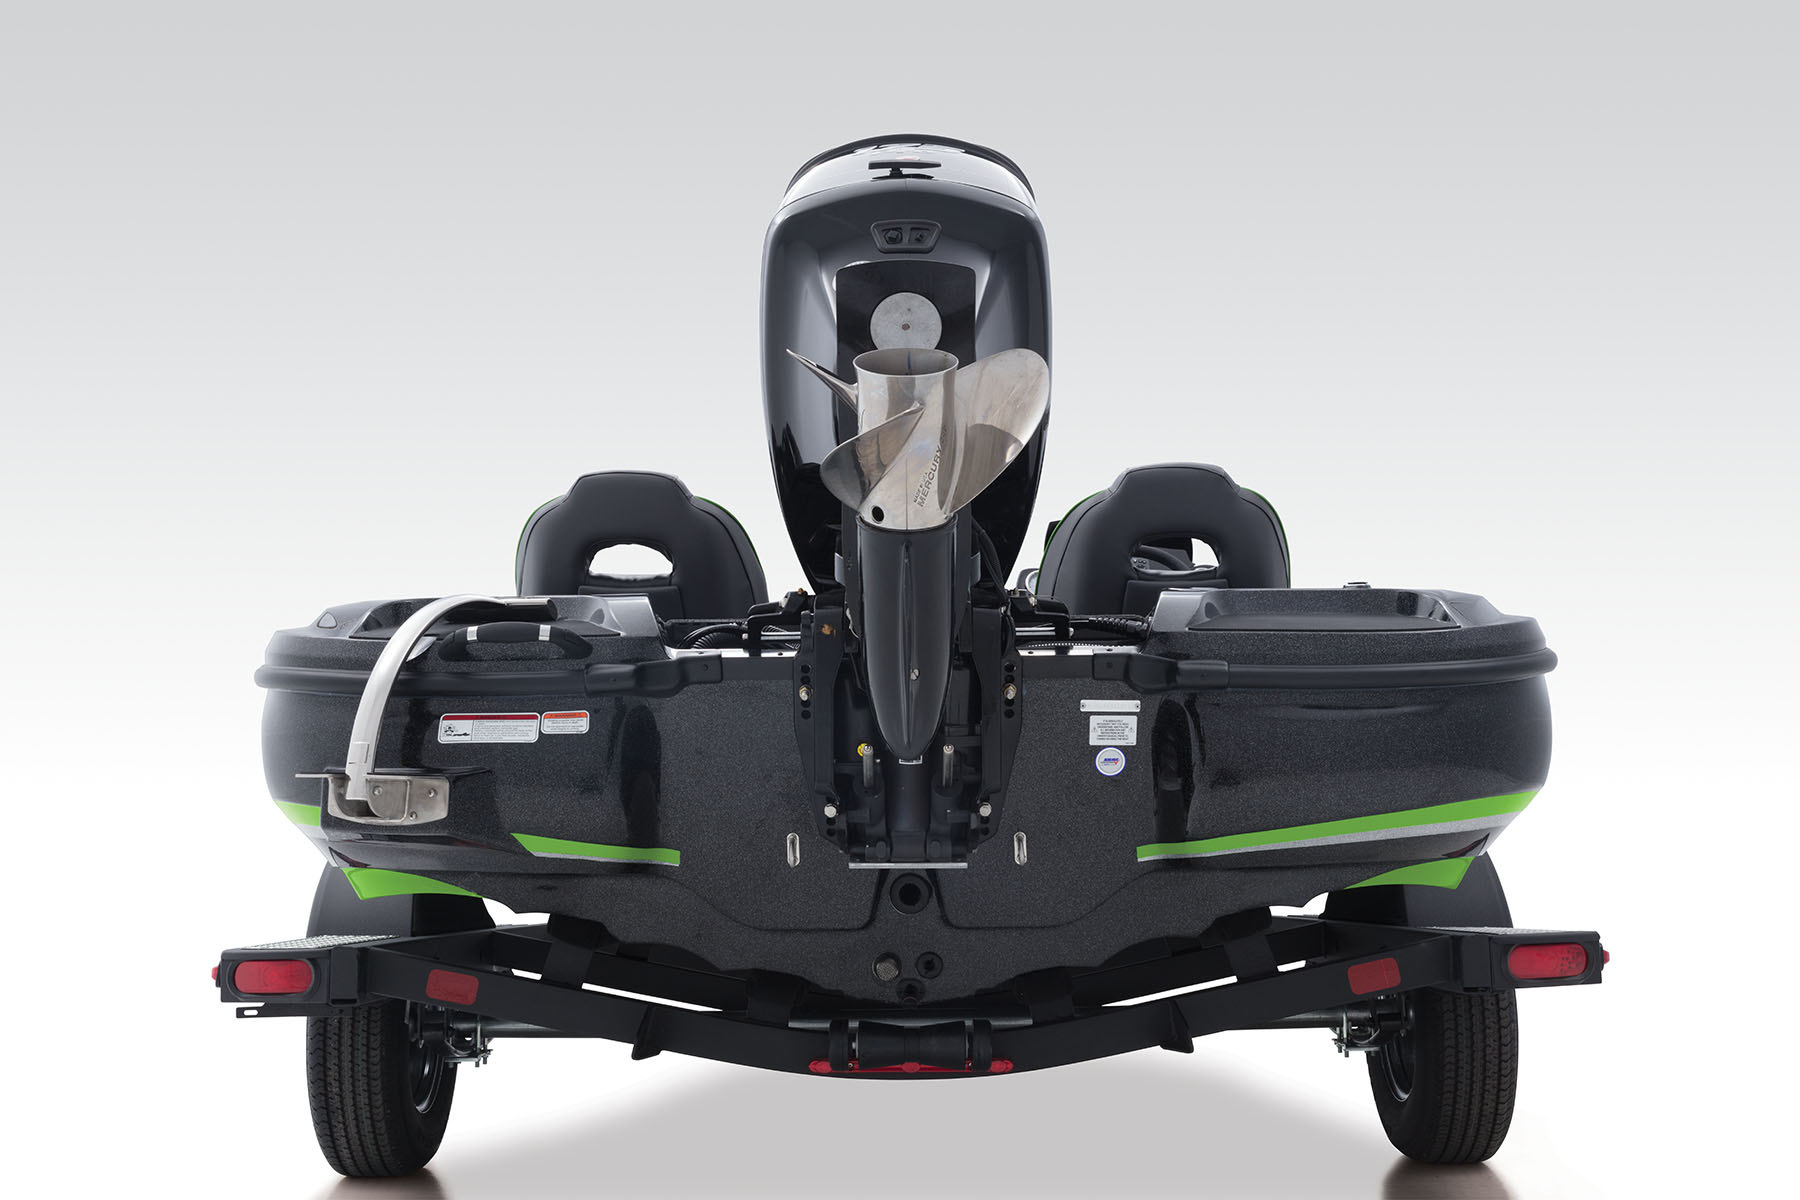 2018 Nitro Z18 Bass Boat Minn Kota Trolling Motor Wiring Diagram Motorcycle Review And Mercury Outboard